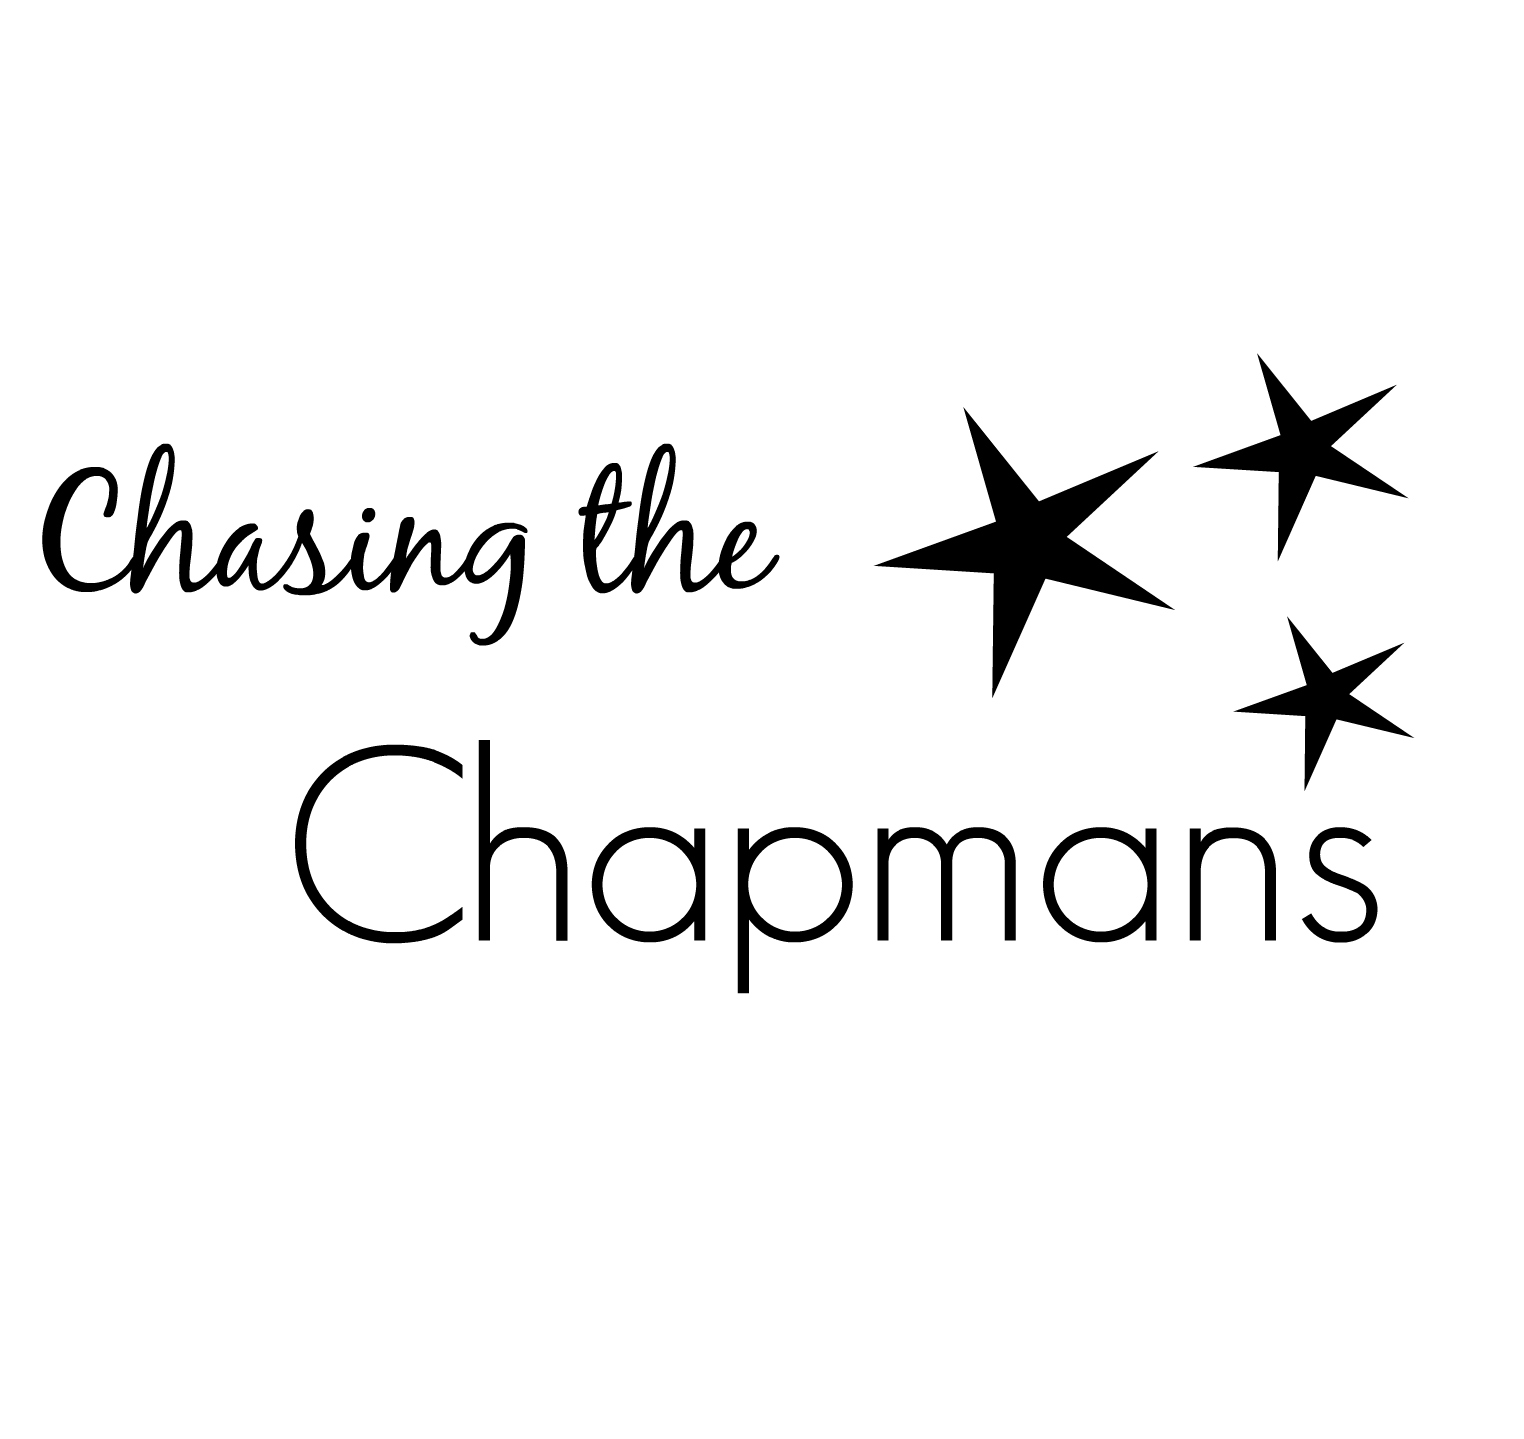 Chasing the Chapmans